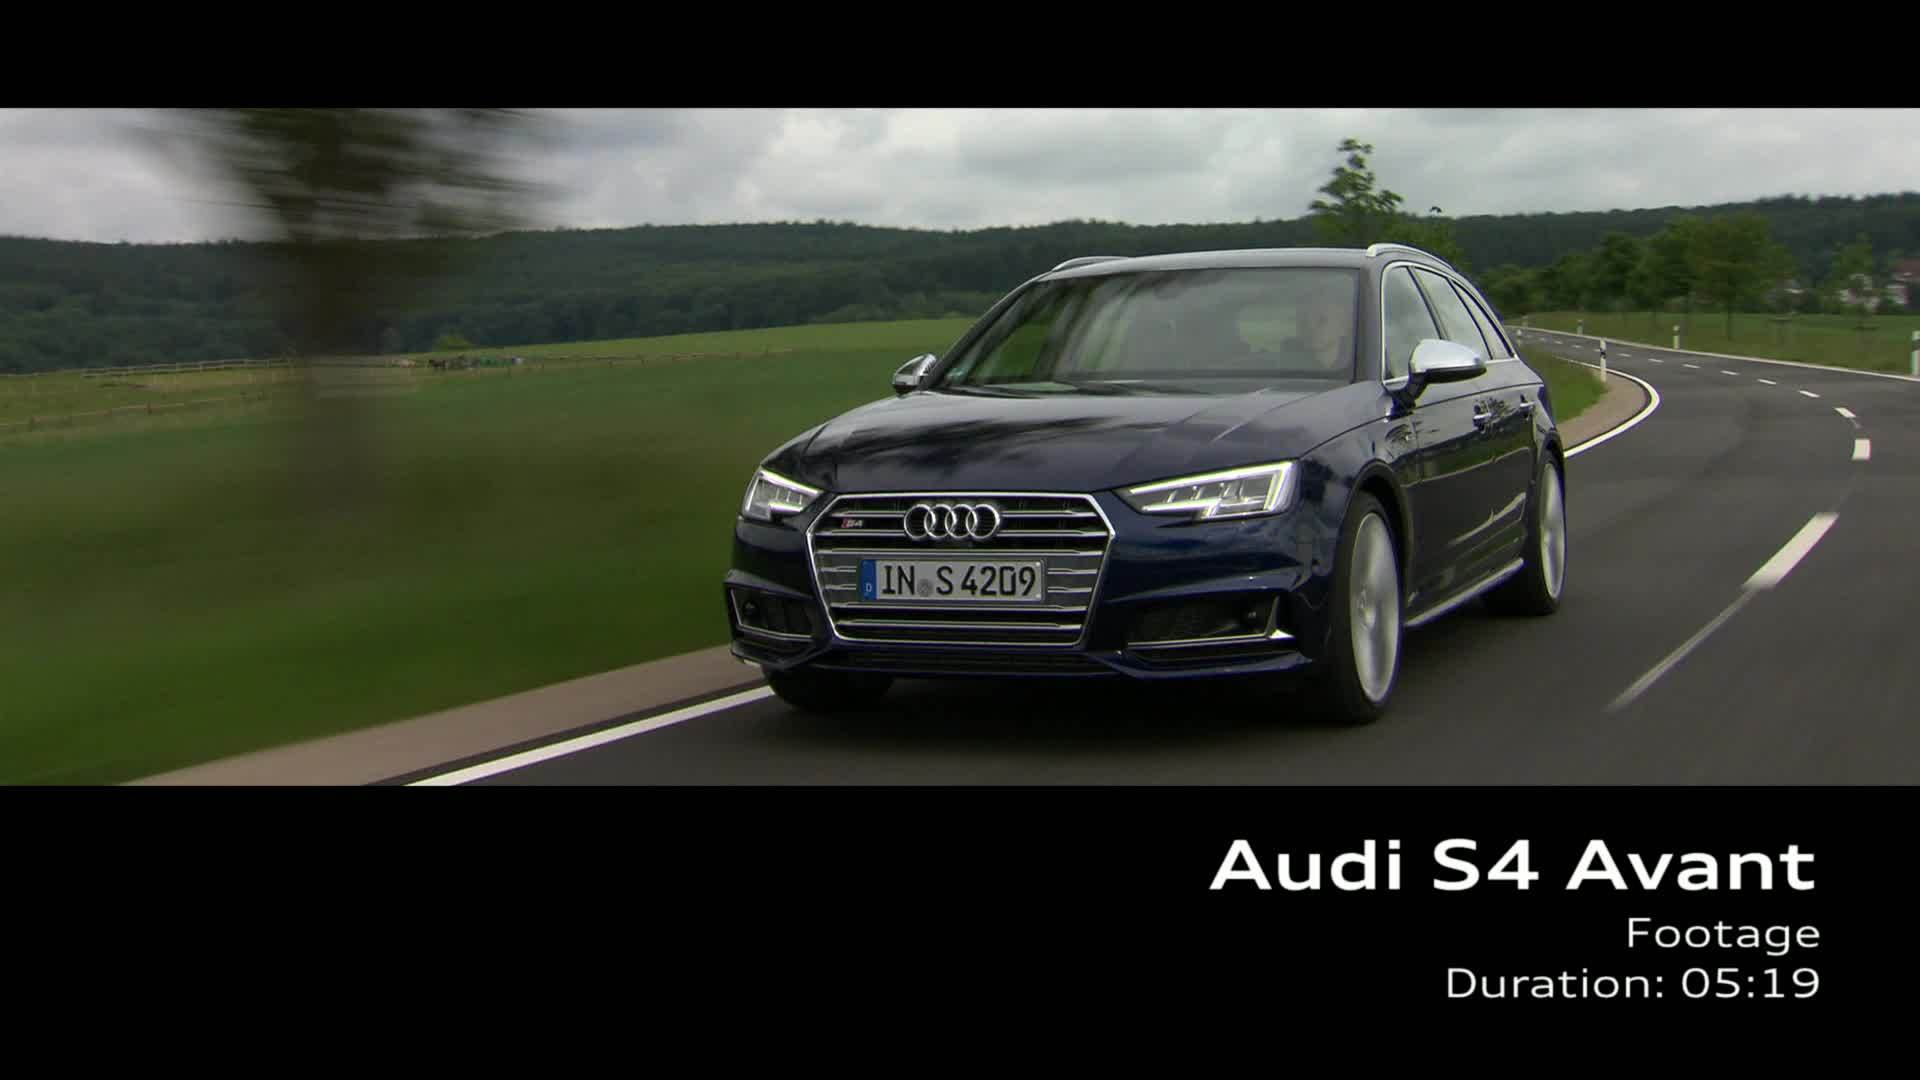 Audi S4 Avant (2016) – Footage on Location